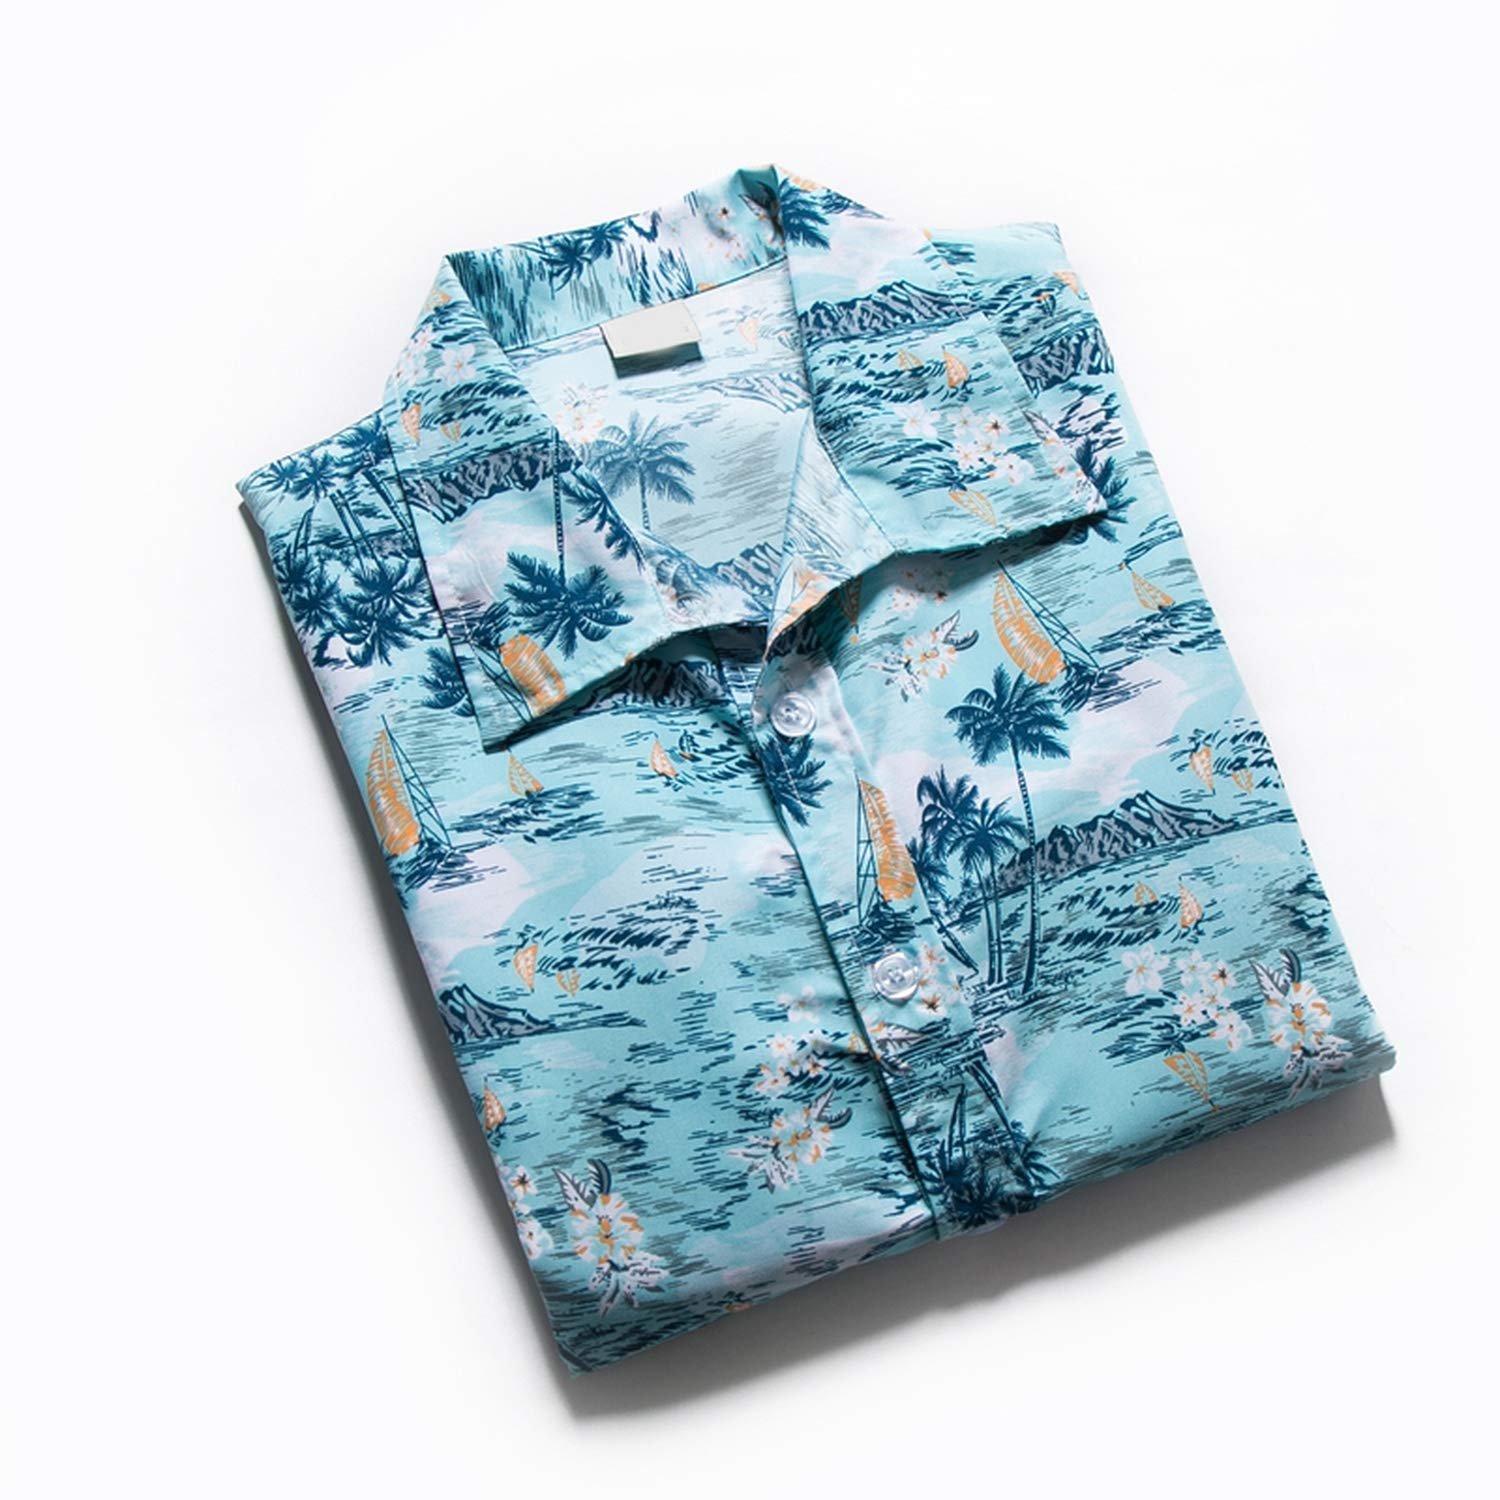 All Too Well-button-down-shirts Men Shirt Palm Tree Print Beach Hawaiian Shirt Short Sleeve